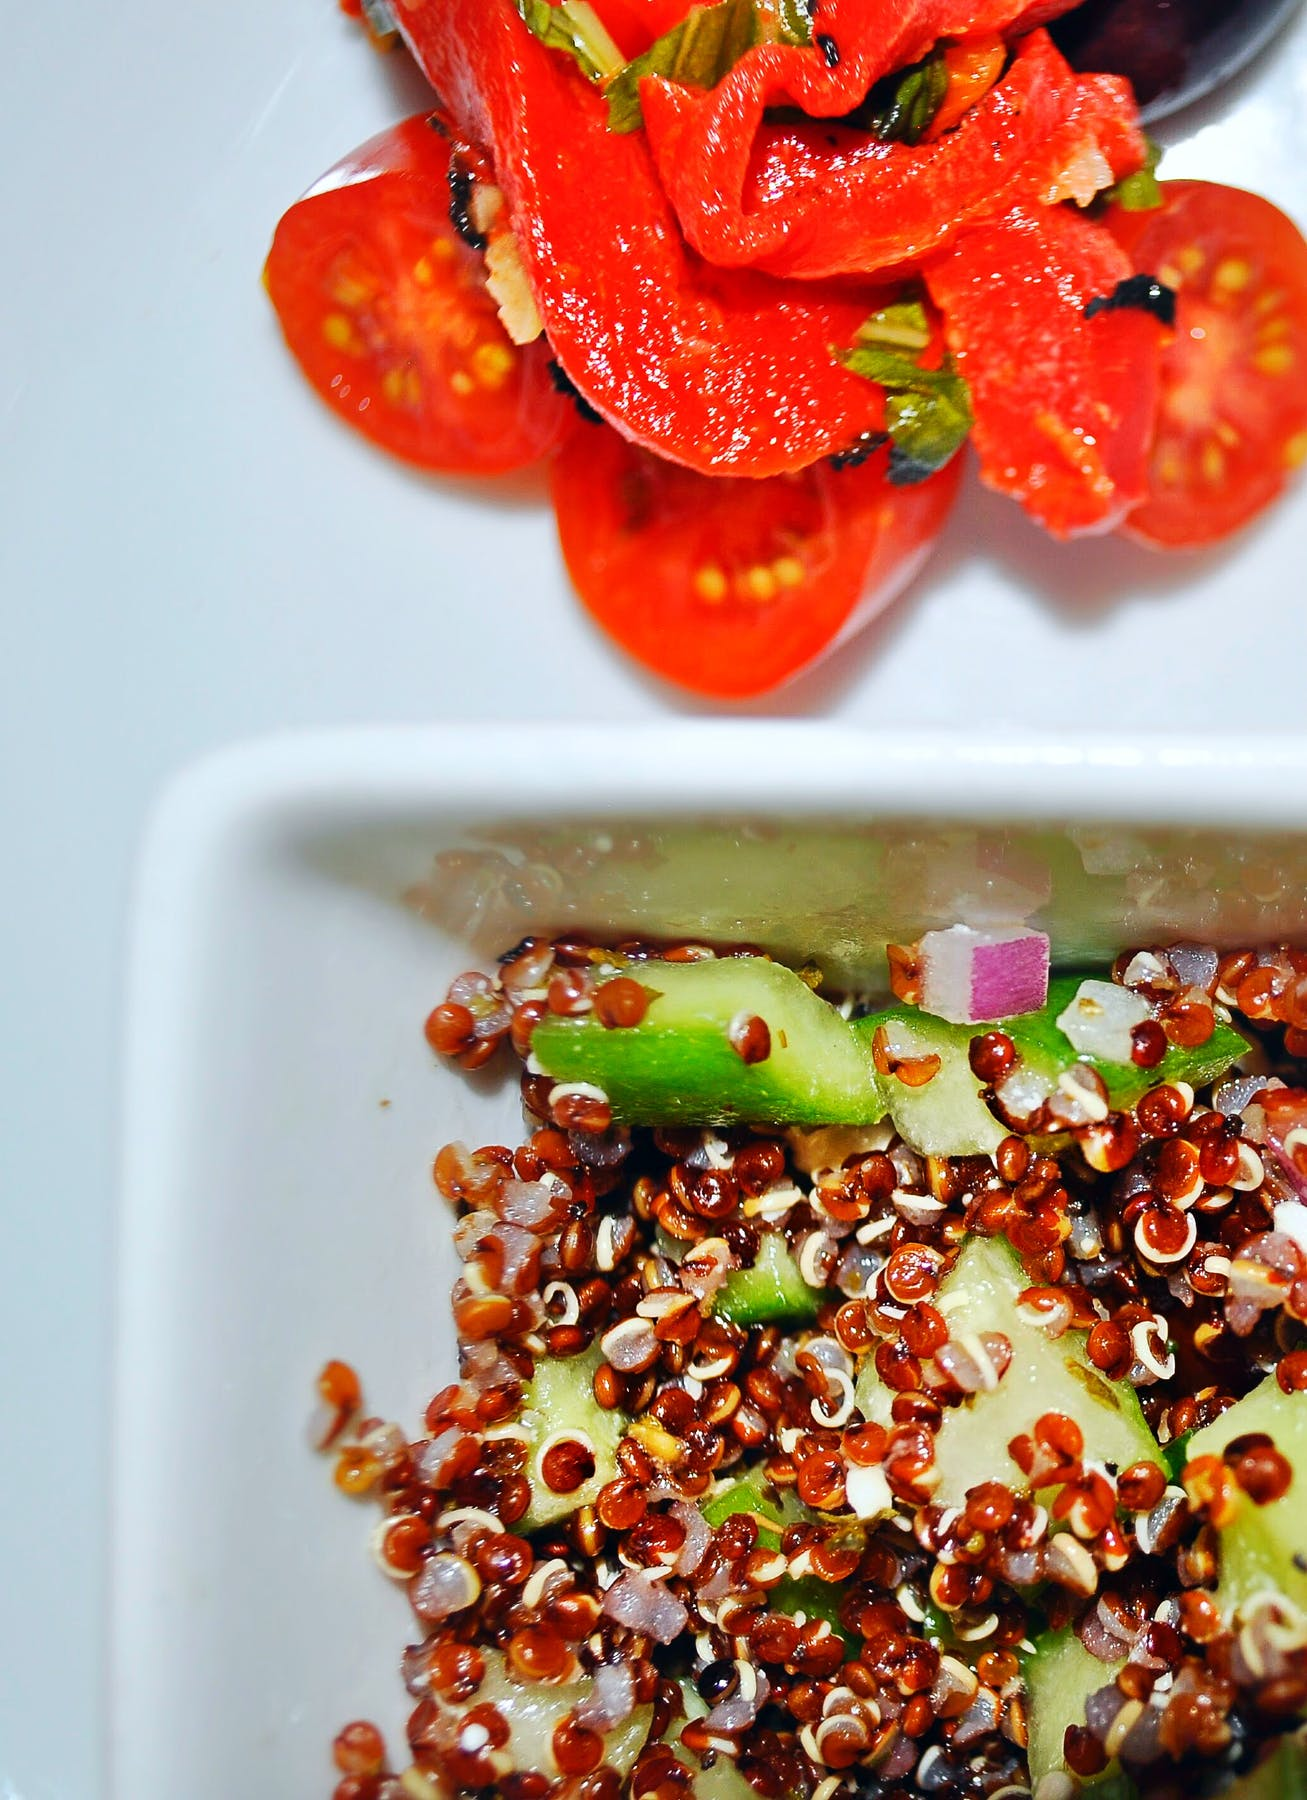 a plate with quinoa salad and vegetables